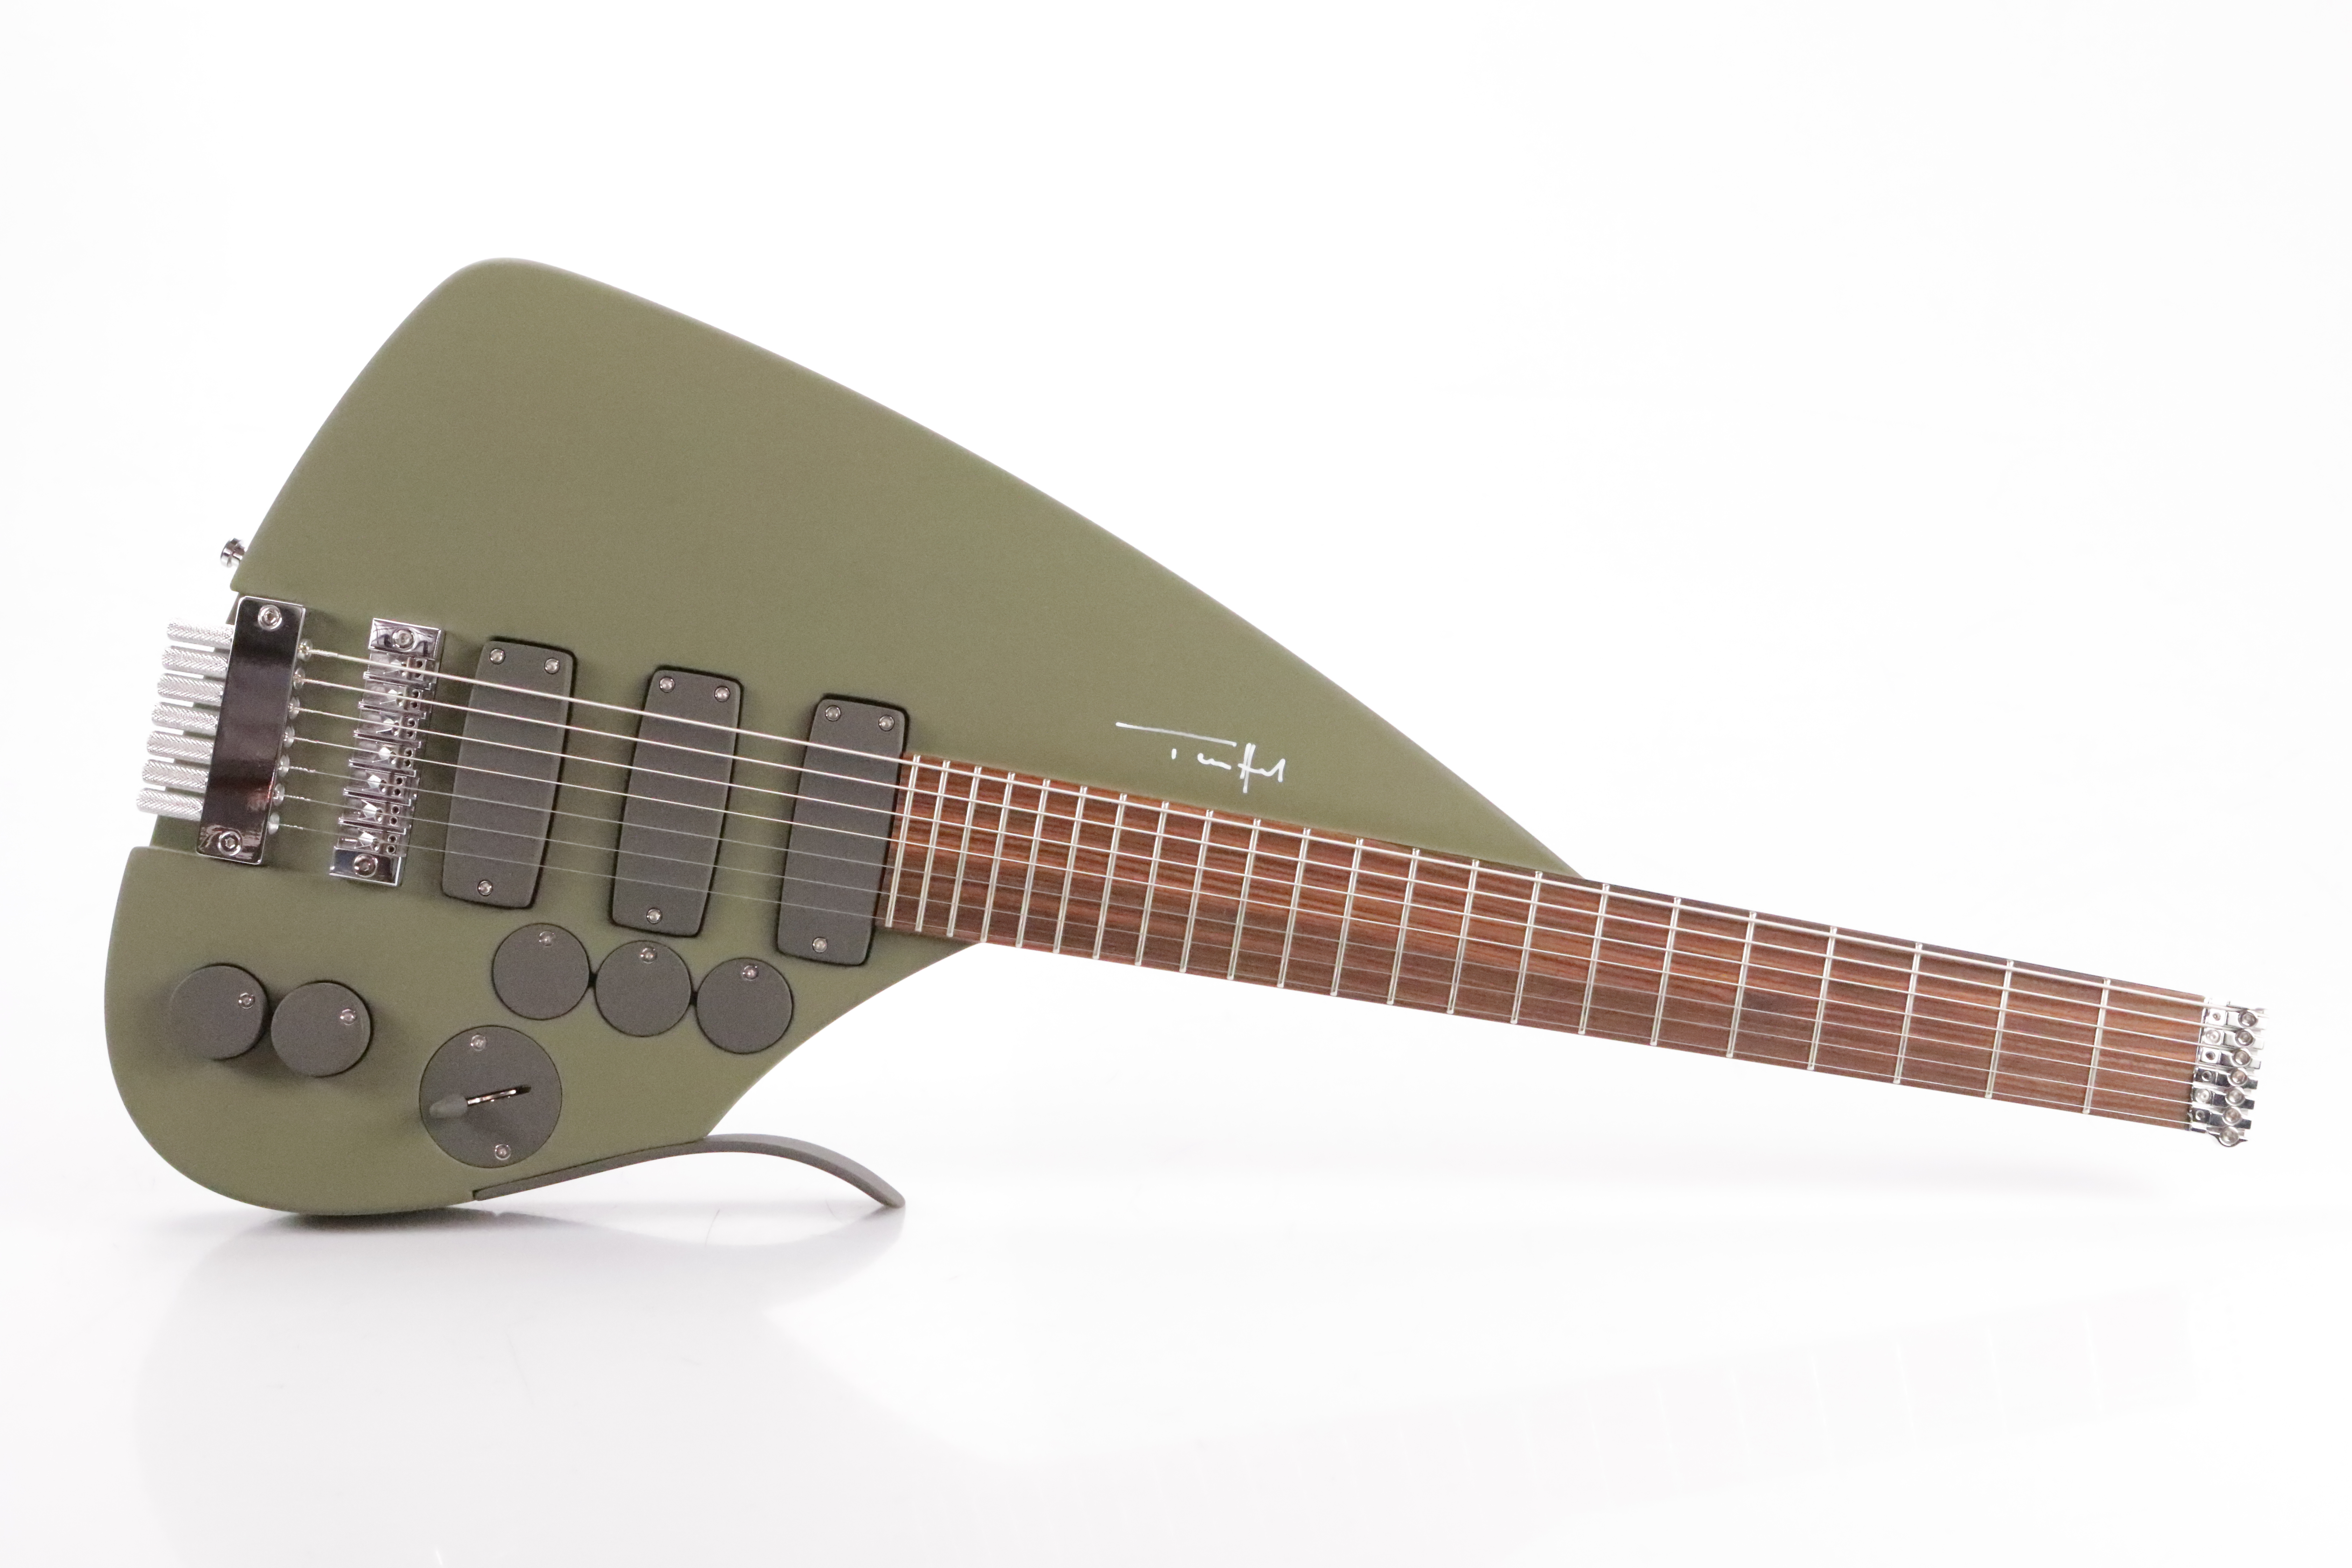 Teuffel Tesla Studio 7 String Electric Guitar Olive w/ Case #35681